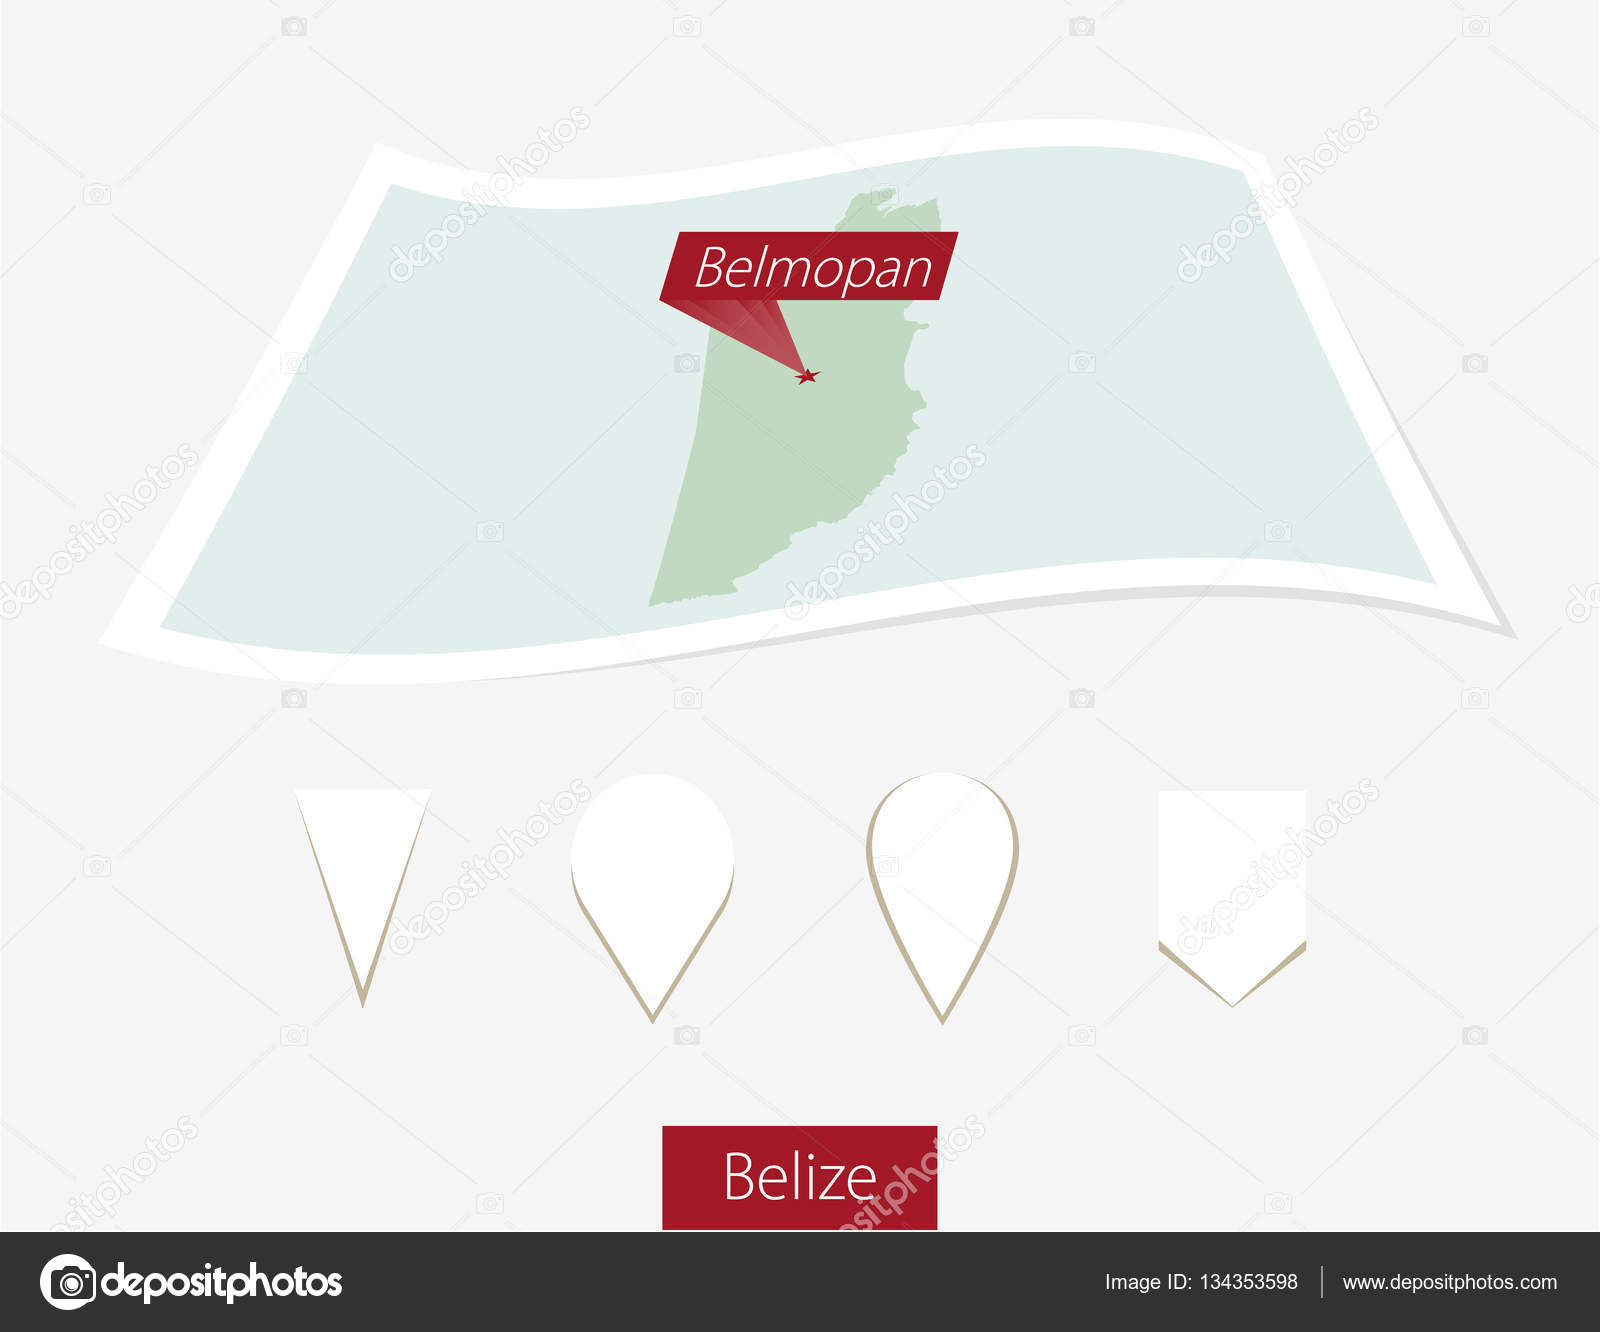 Curved Paper Map Of Belize With Capital Belmopan On Gray - belmopan map